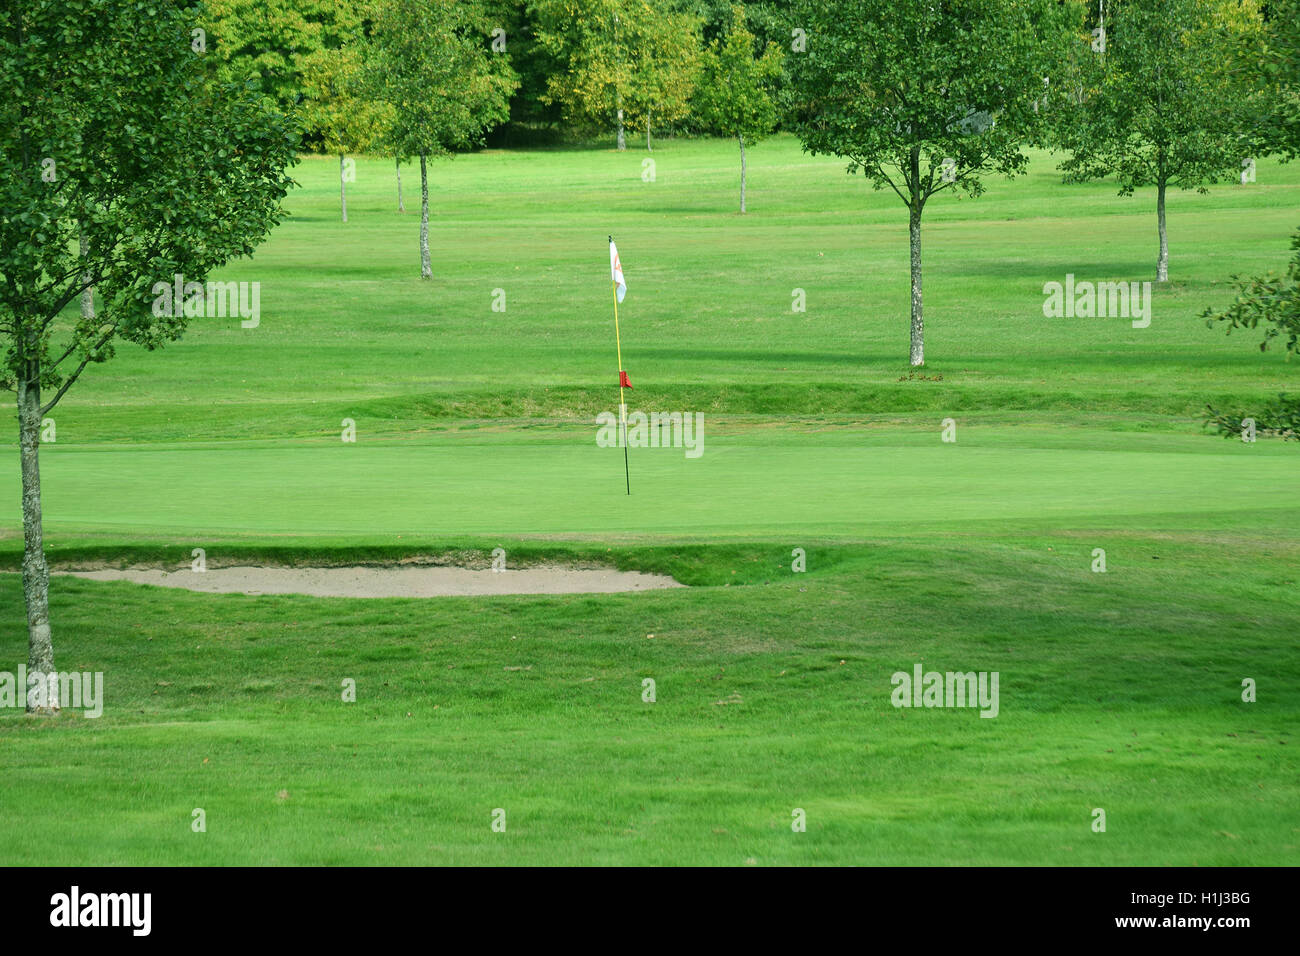 Putting green on a golf course. - Stock Image